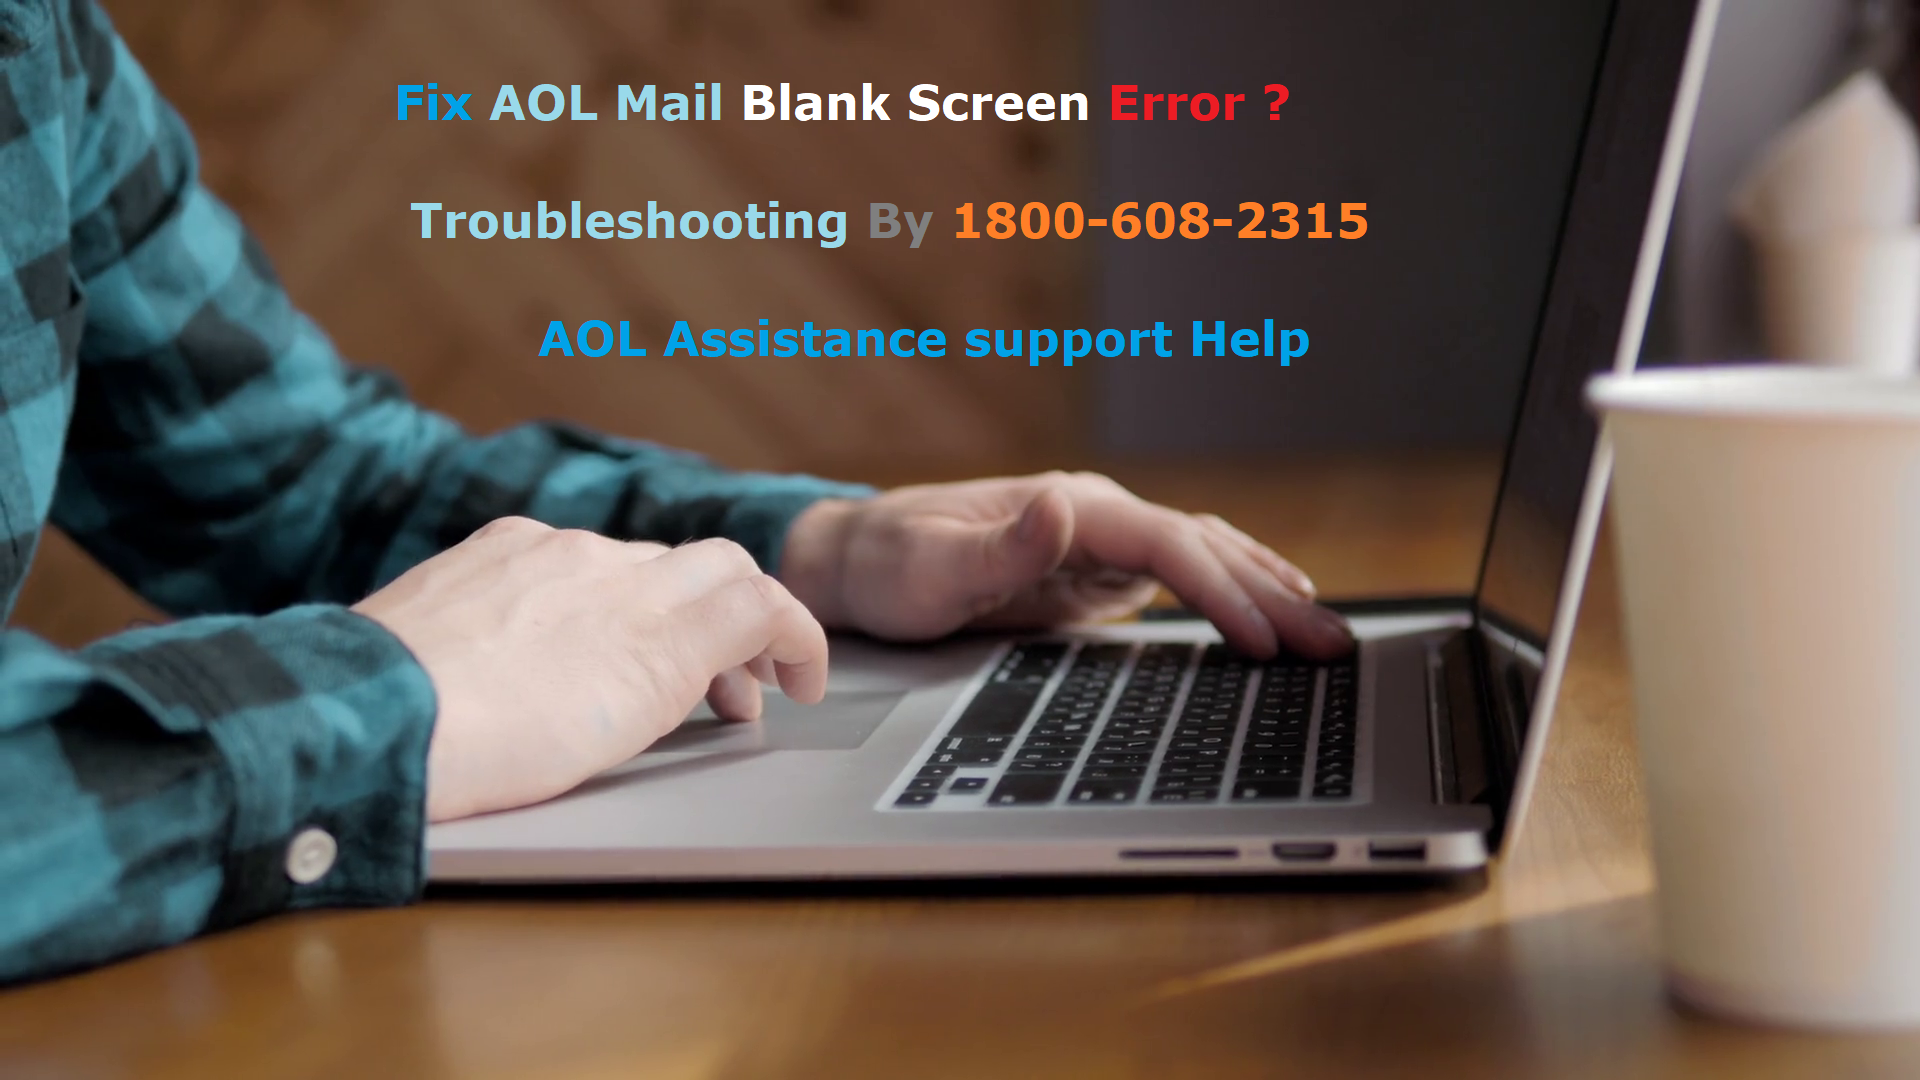 Fix AOL Mail Black Screen Error